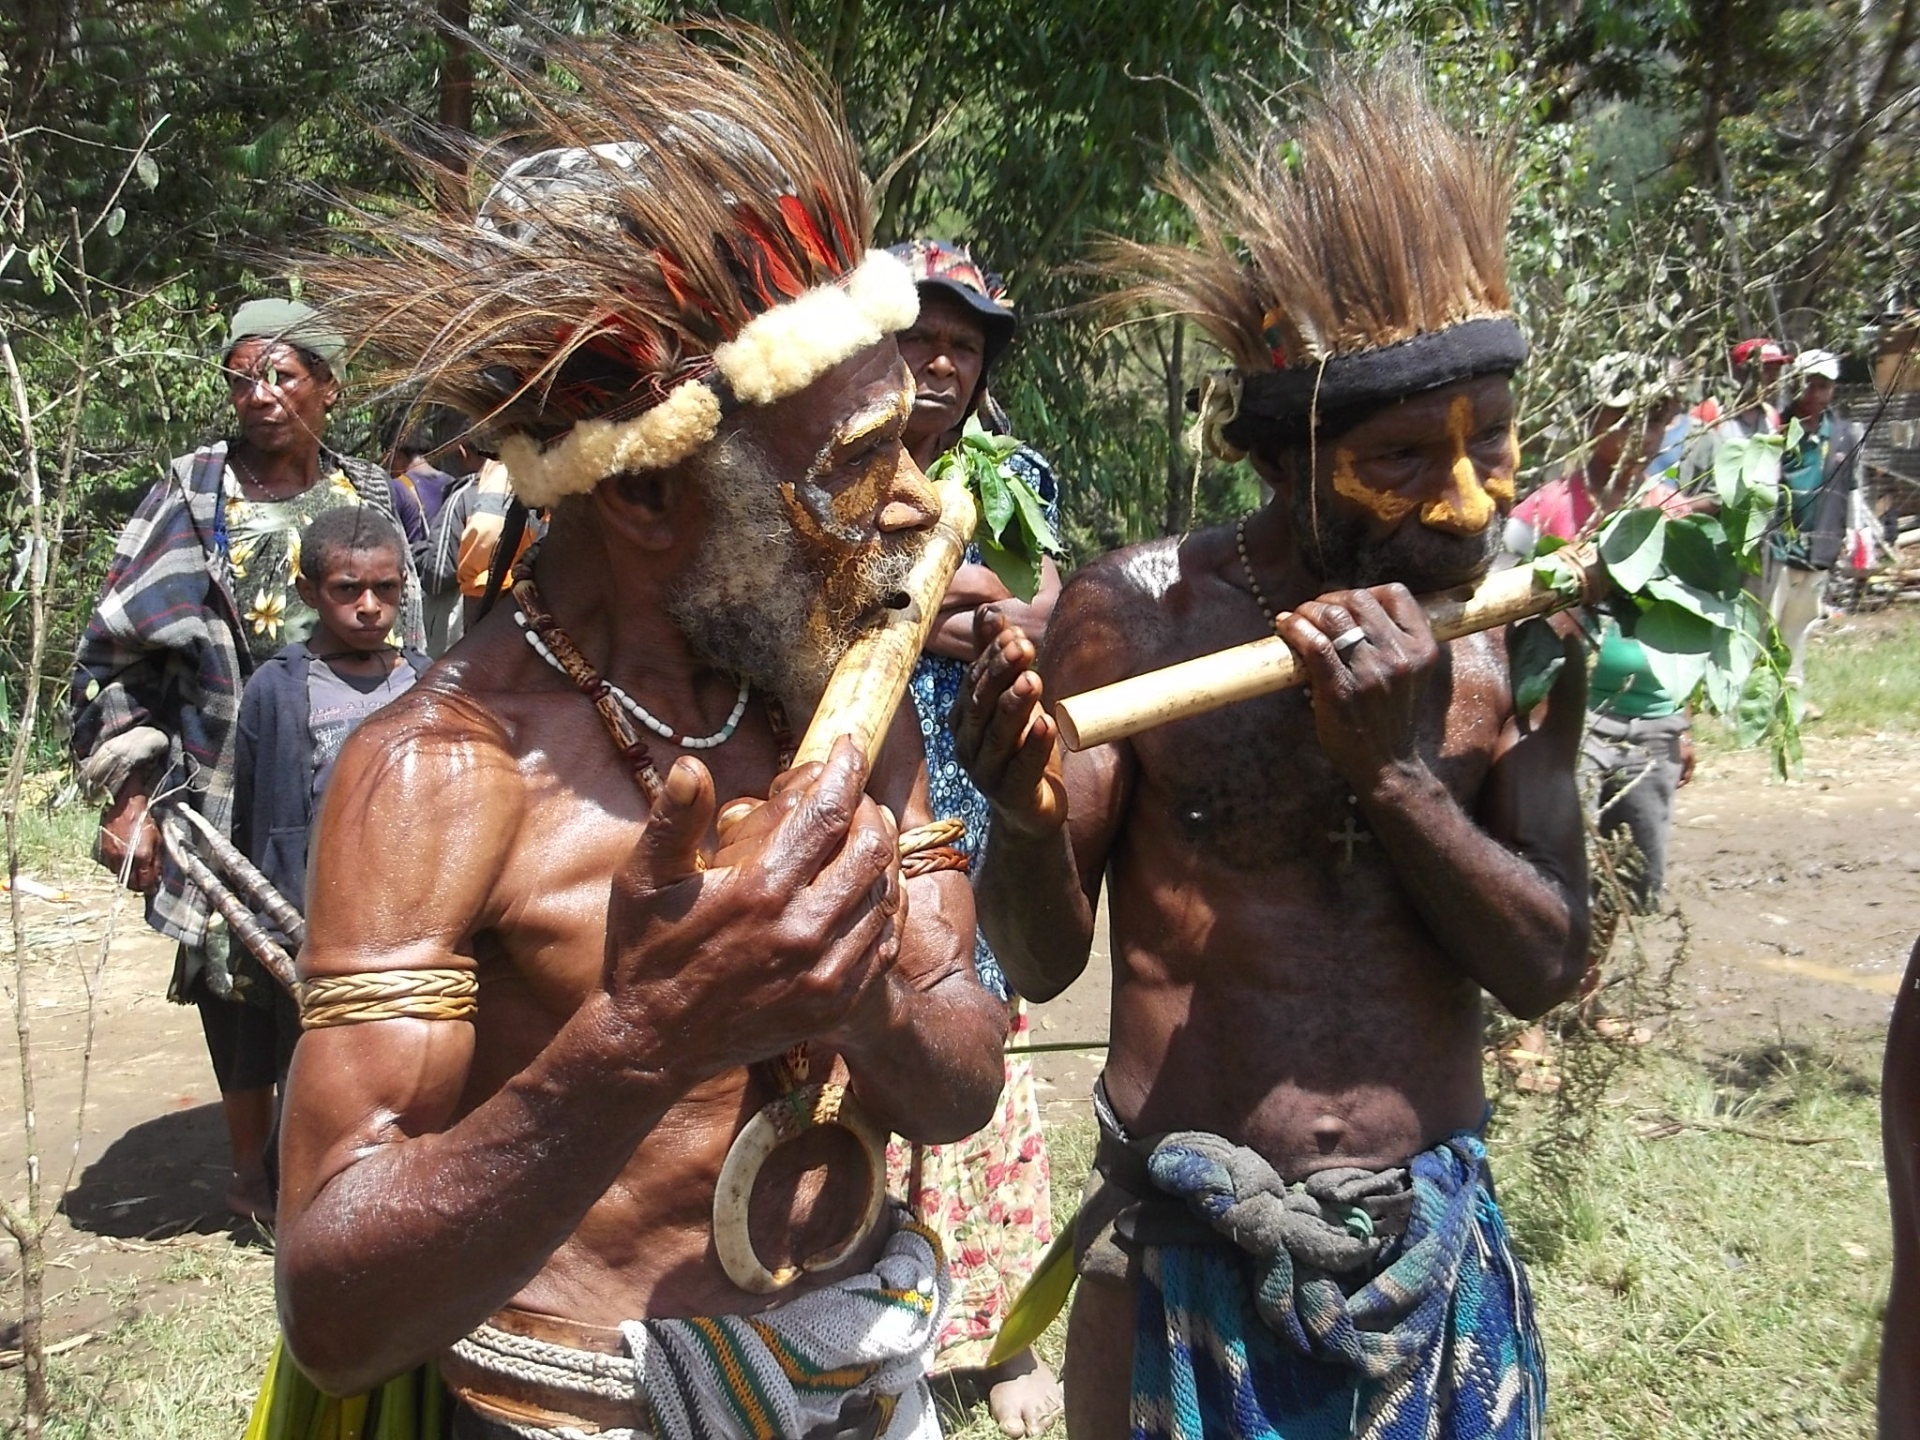 Traditional PNG;  Mt Wilhelm; PNG Tourism; Mount Wilhelm; Climbing; Trekking; PNG; Papua New Guinea